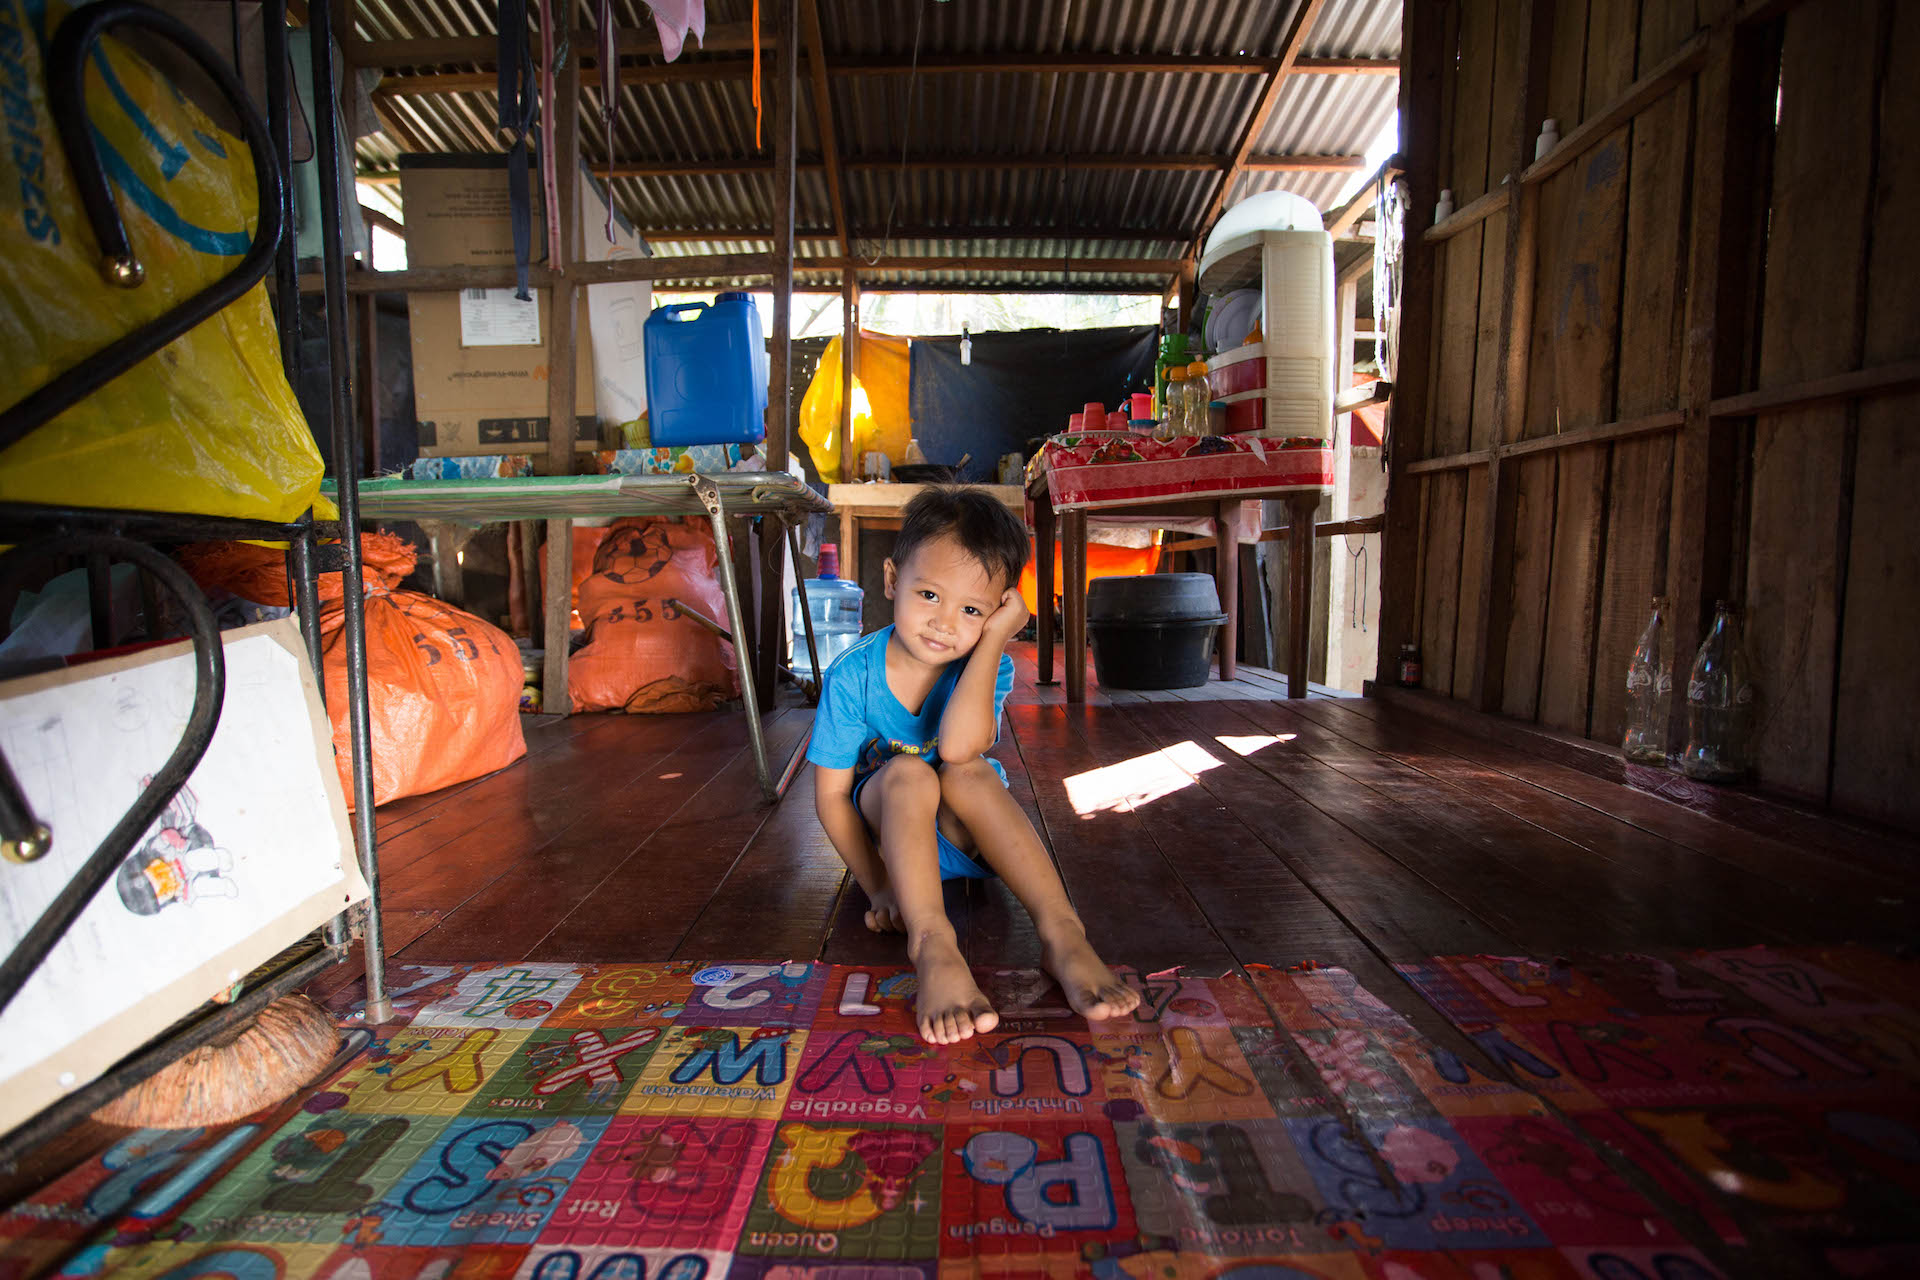 A young Filipino boy sits on the floor of his home. His legs are straight out in front of him and his head leans on his arm. He is wearing a blue t-shirt.